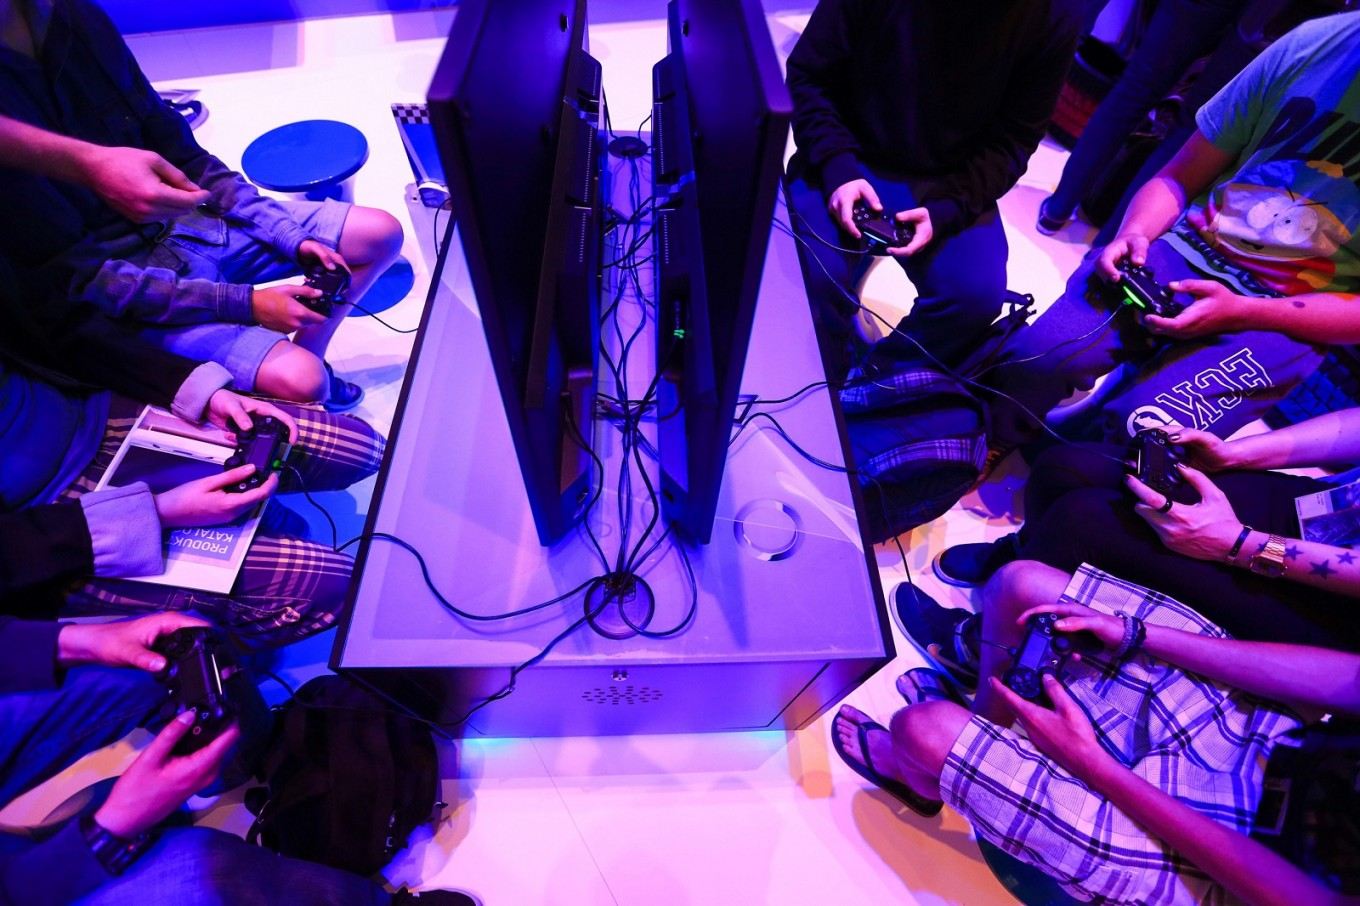 PlayStation's best-ever cycle girds Sony for cloud-gaming battle